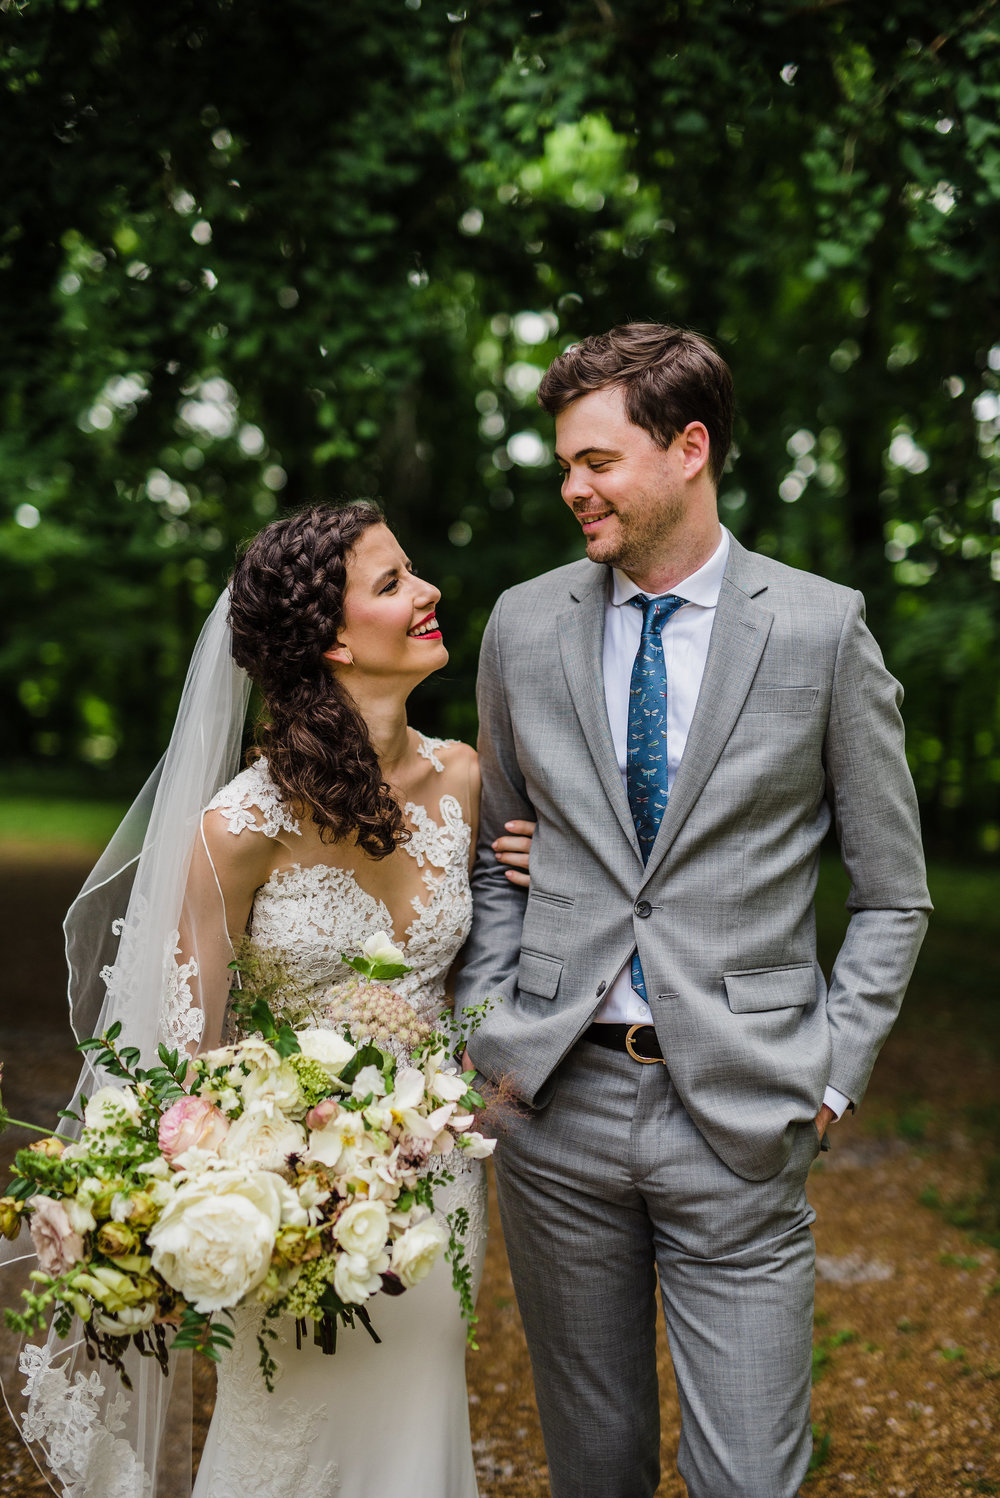 Art Deco Garden Party Wedding at Travellers Rest, Nashville // Southeastern Wedding Floral Design